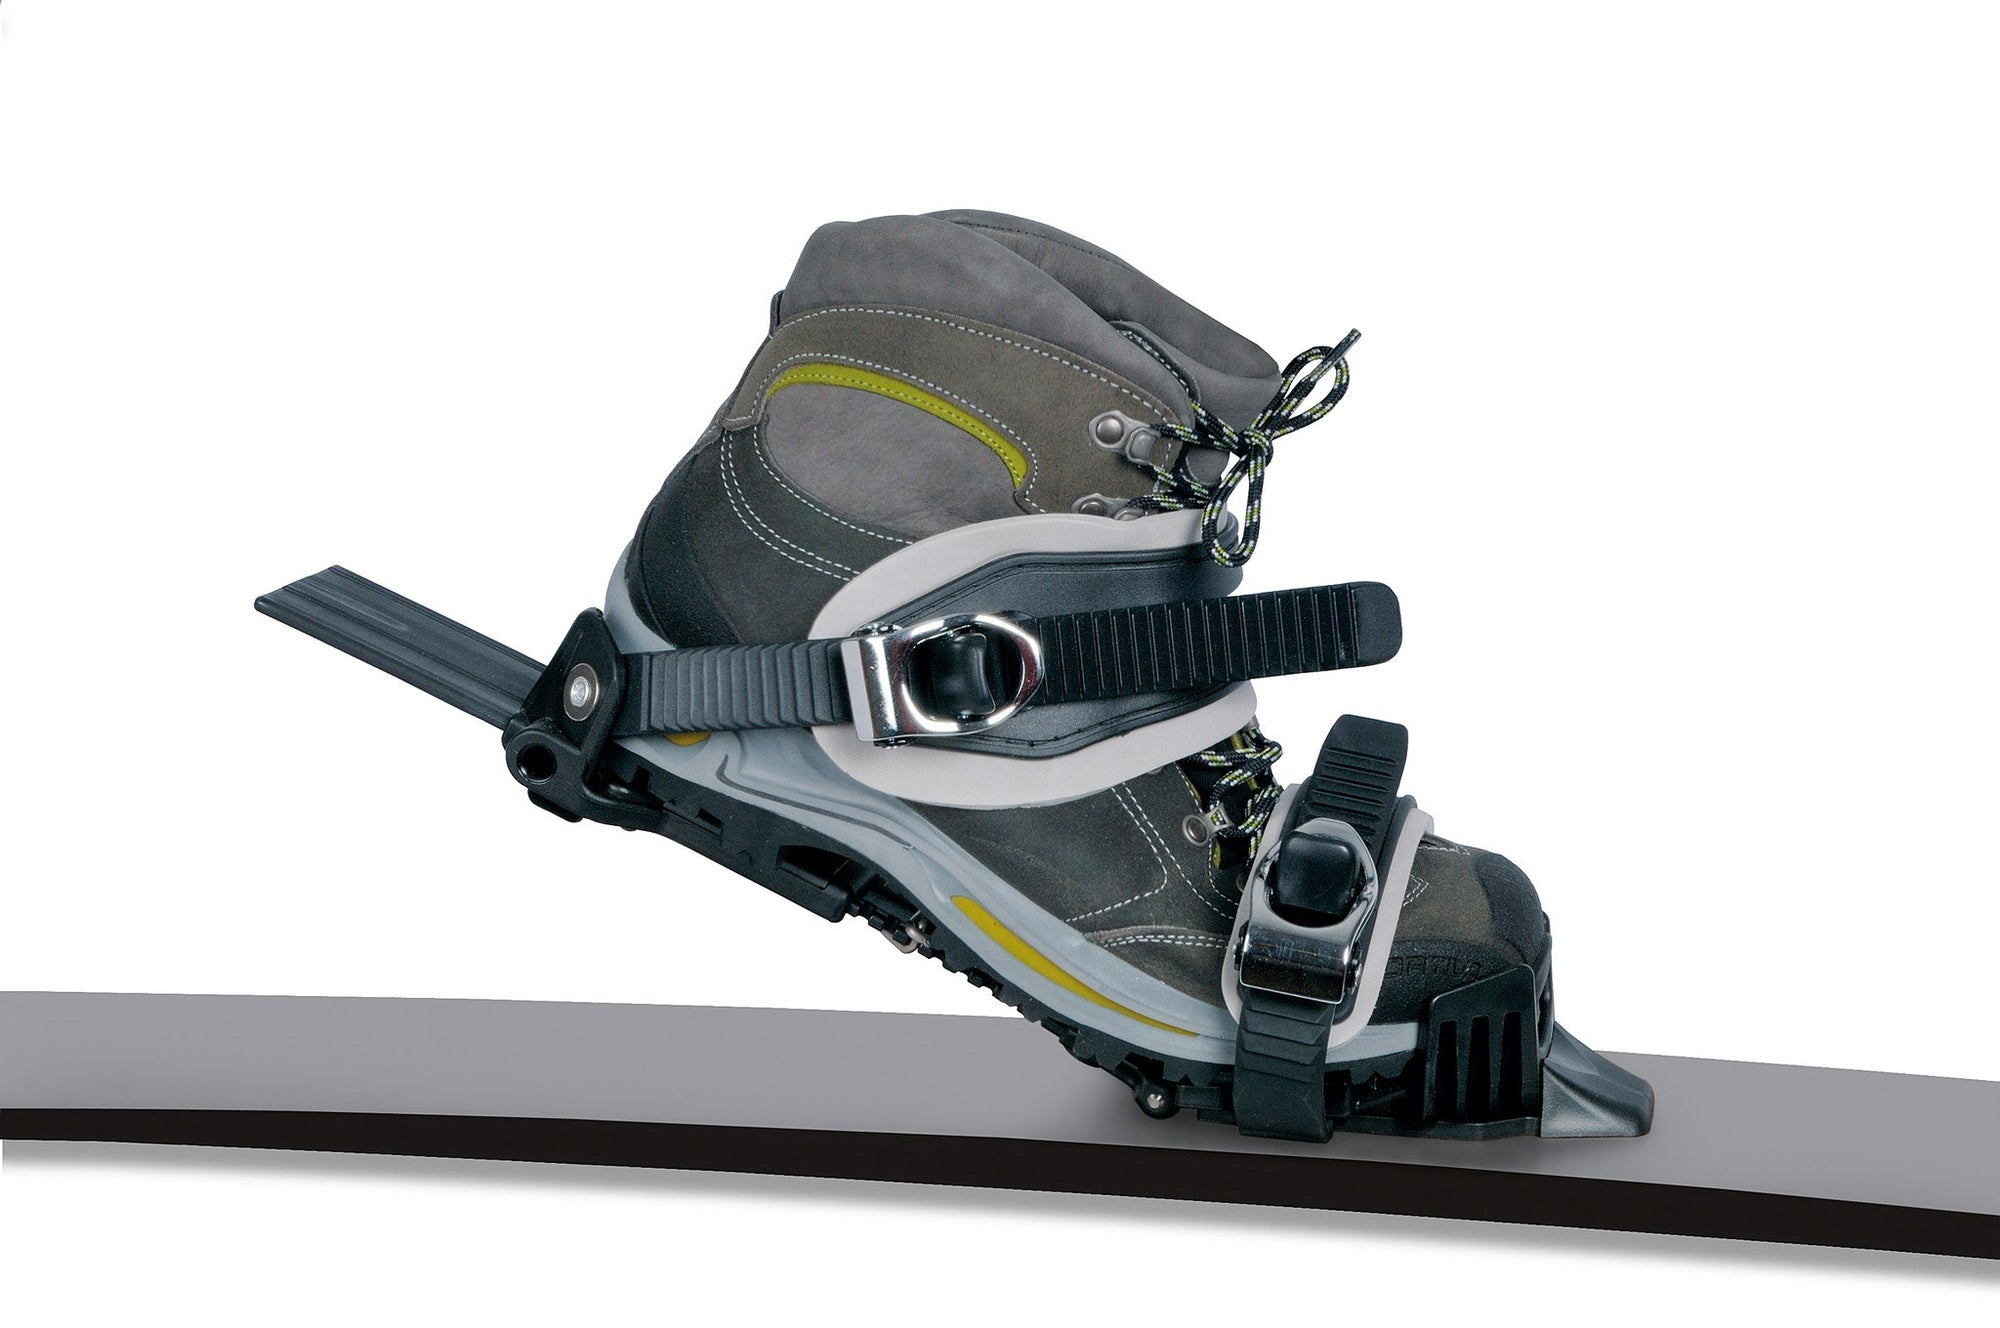 X-Trace Binding, Bindings - Hagan Ski Mountaineering